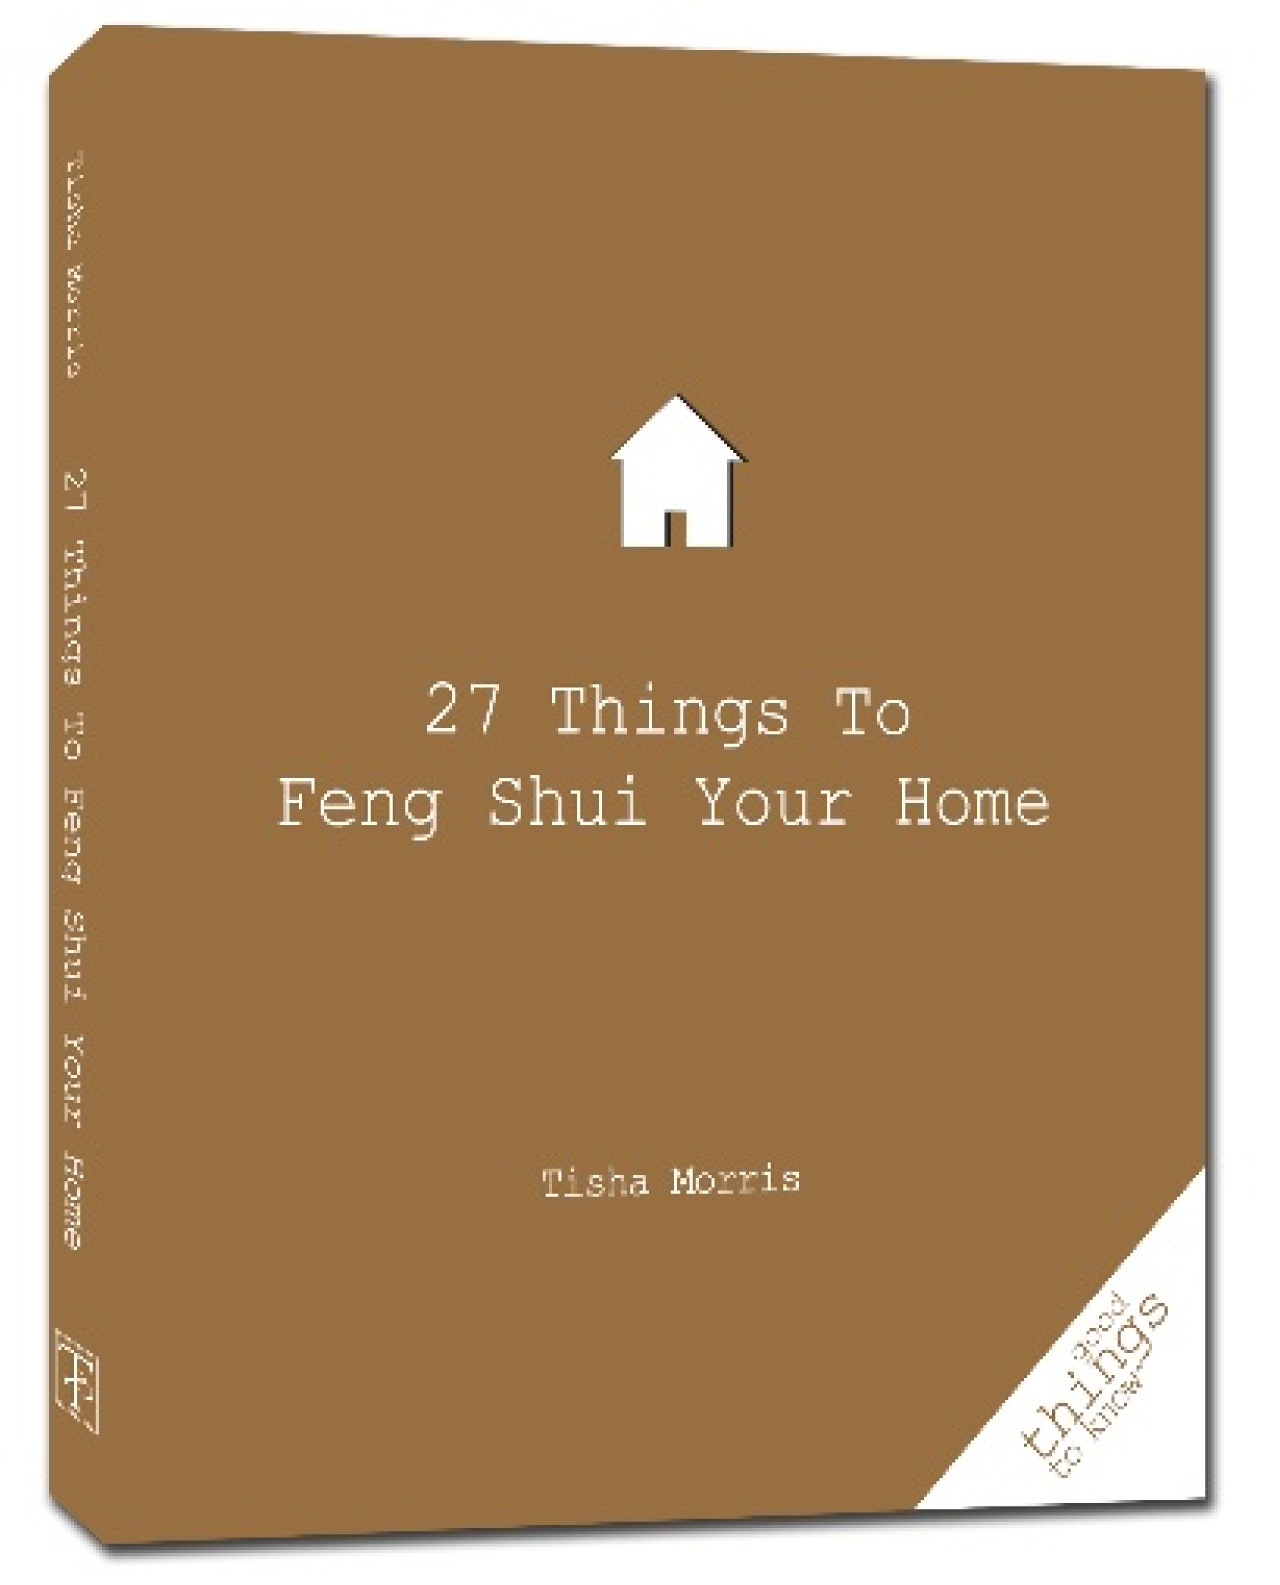 Interview with author Tisha Morris - Feng Shui Blog Tour